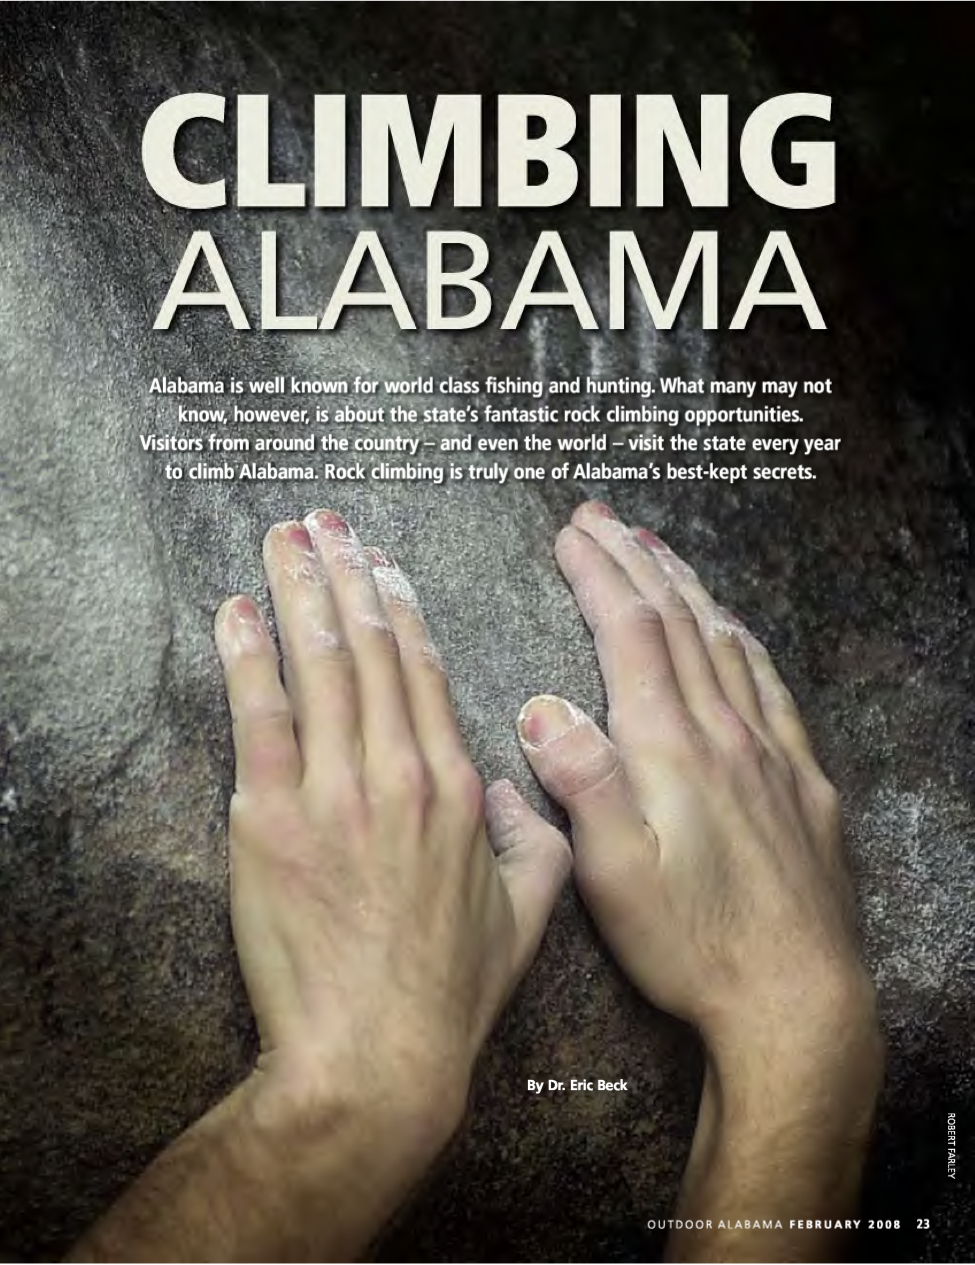 Climbing Alabama By Eric Beck, MD